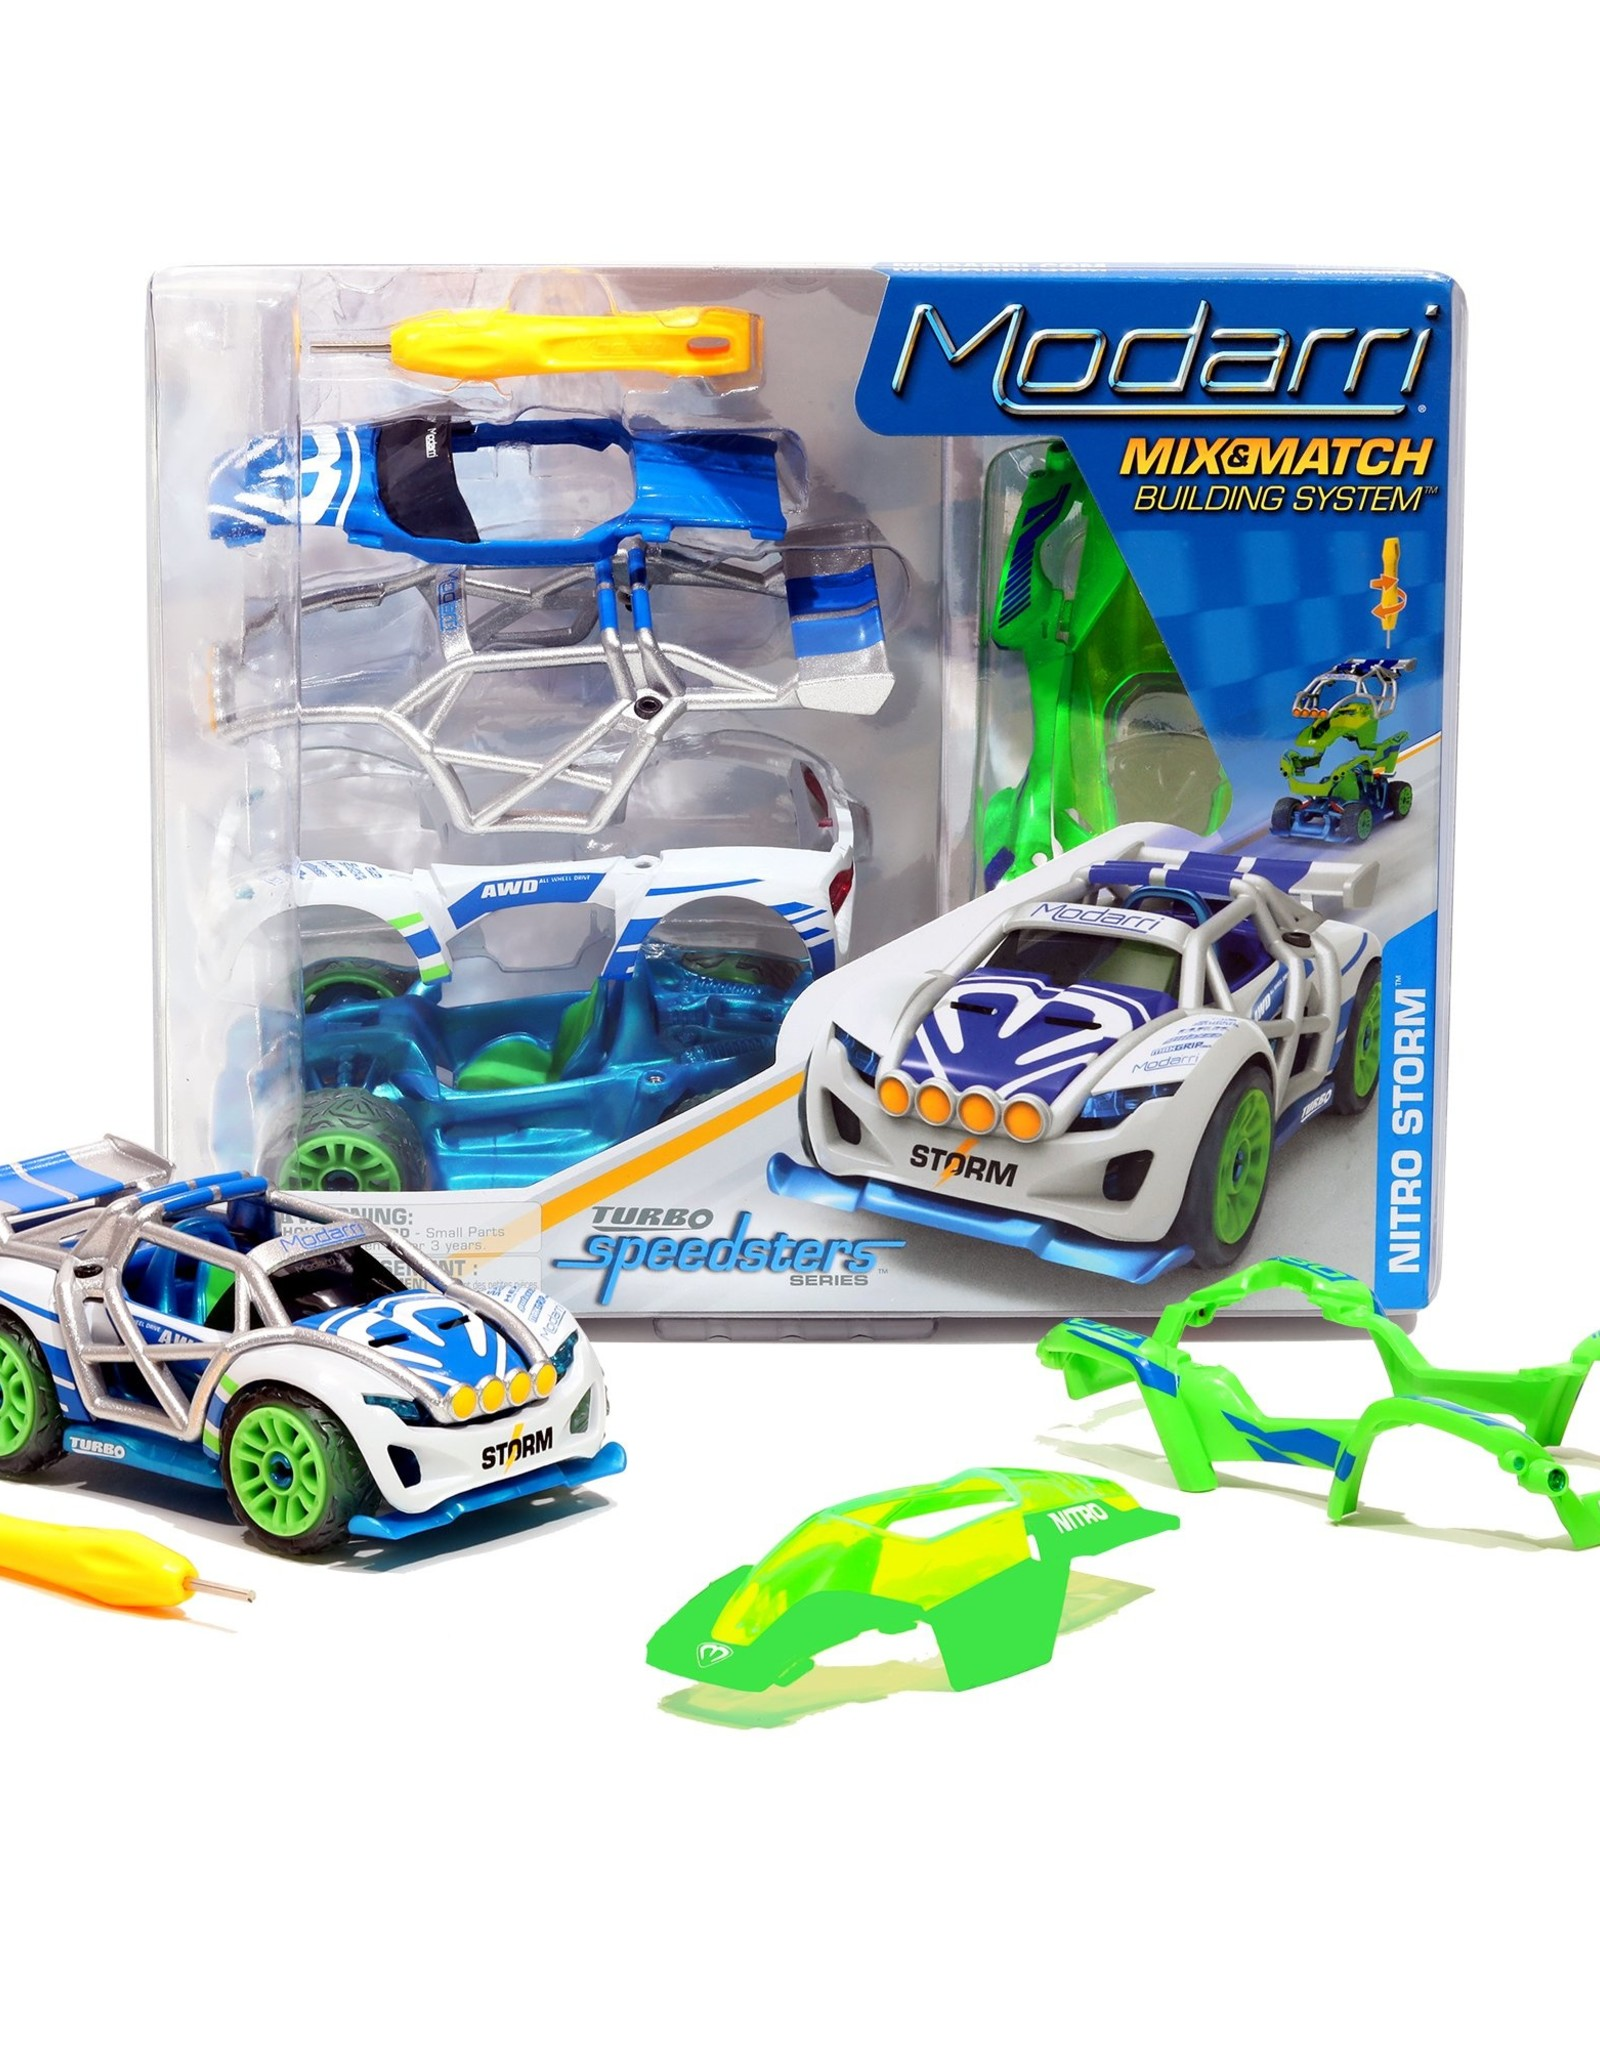 Modarri Modarri Turbo Speedster Assortment